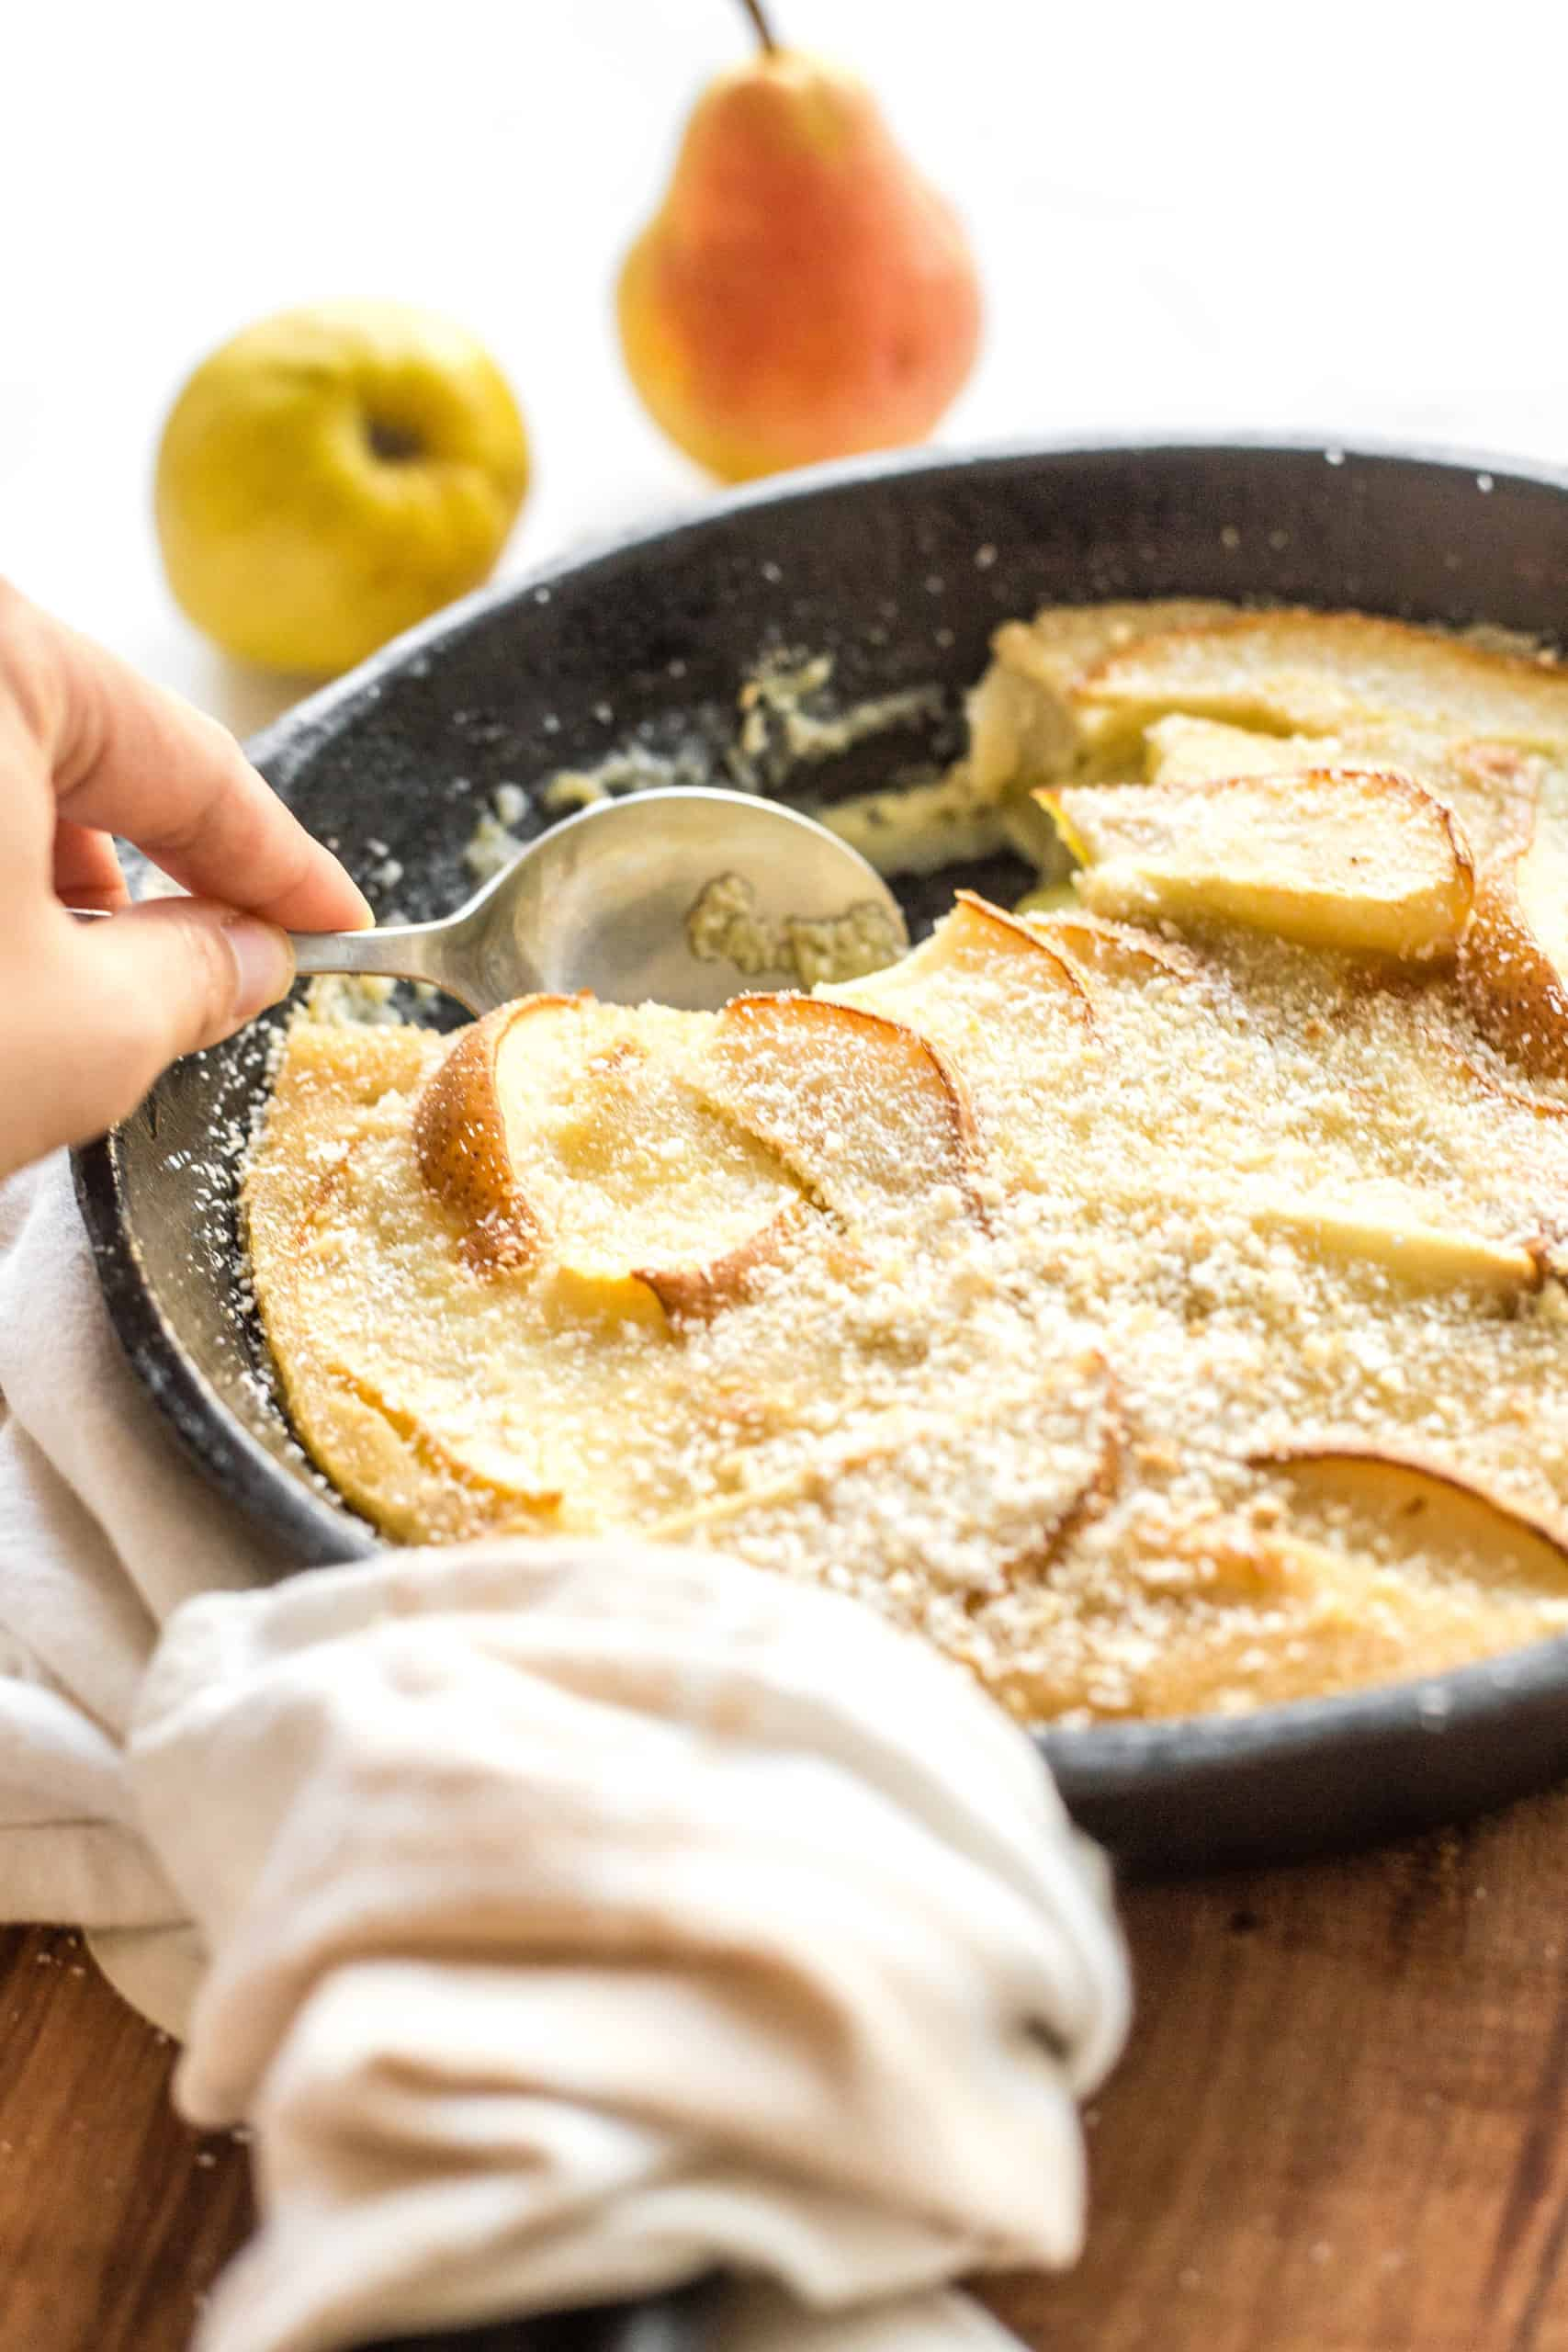 Scooping out Pear Custard Pie from Cast Iron Skillet